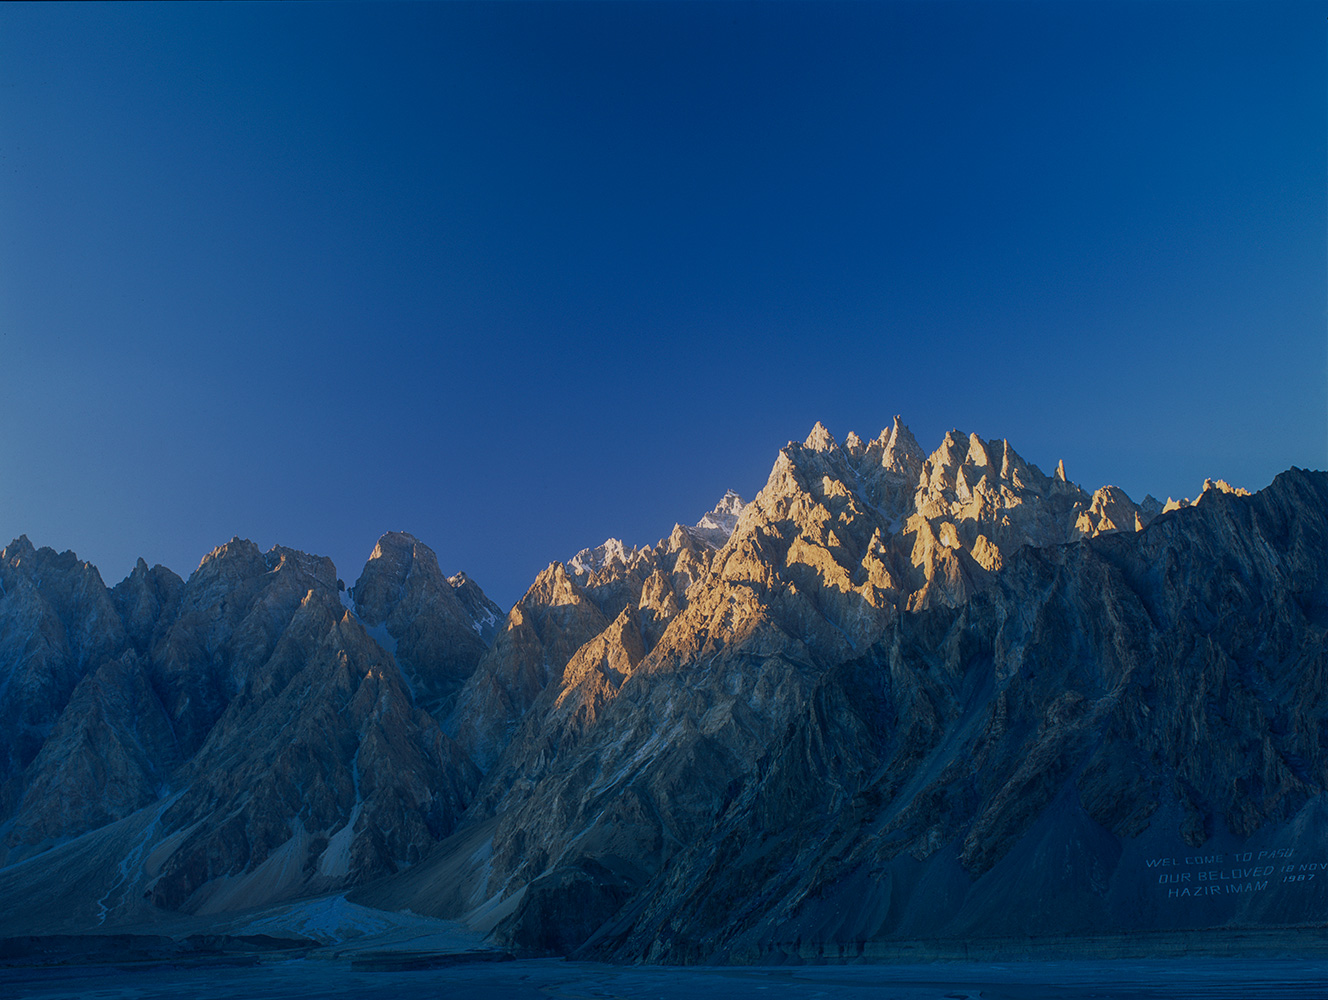 Hunza Valley at Passu